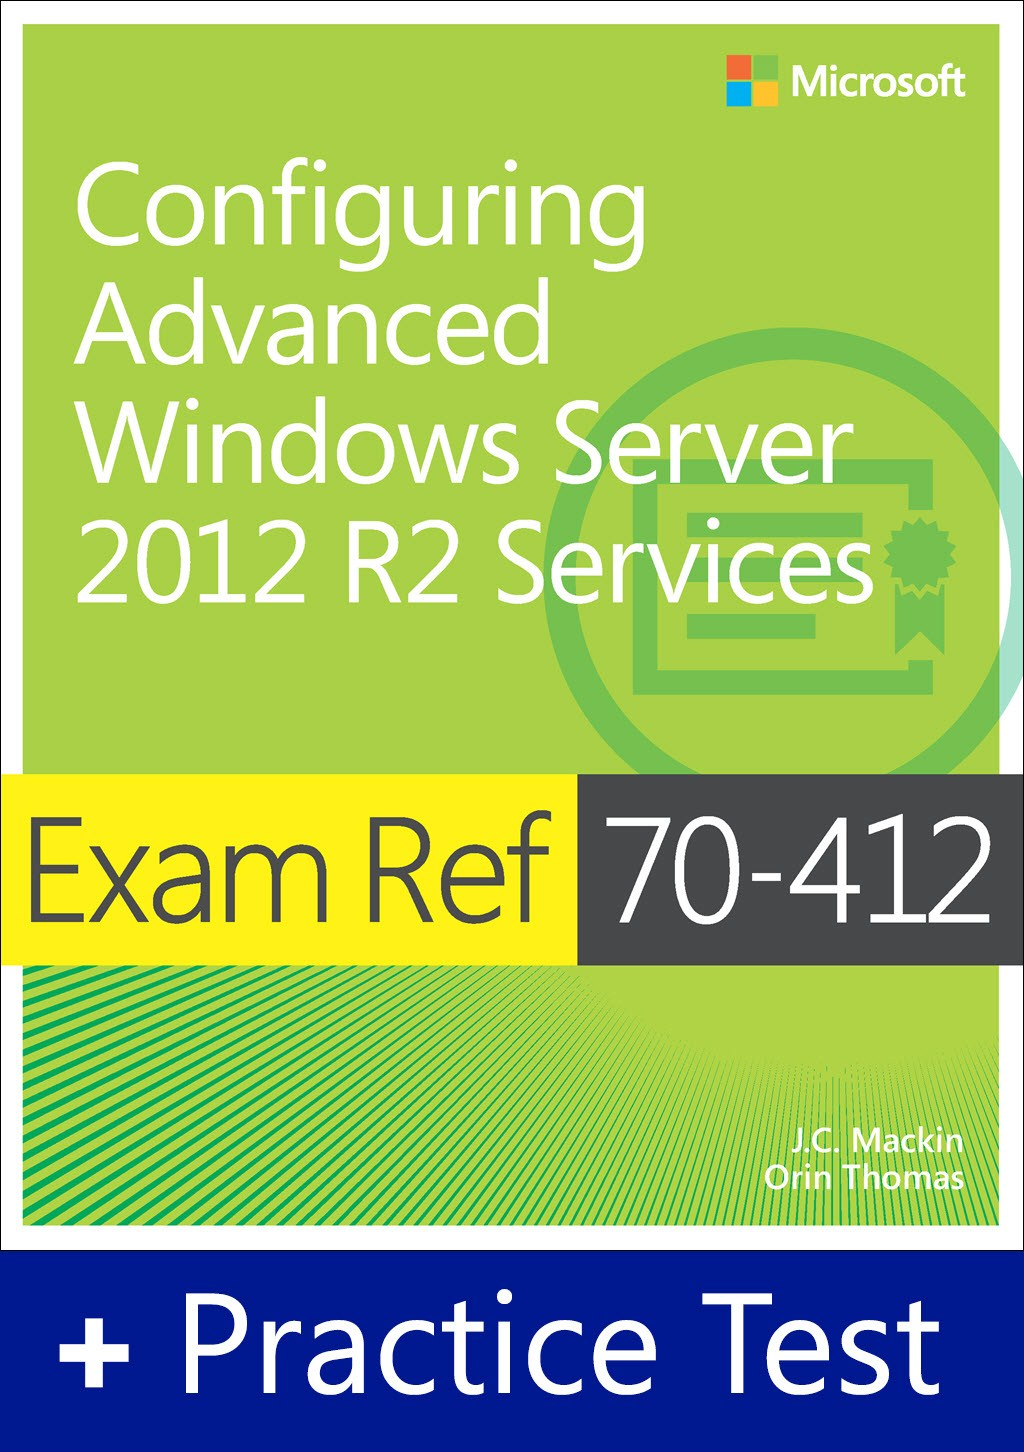 Exam Ref 70-412 Configuring Advanced Windows Server 2012 R2 Services with Practice Test Access